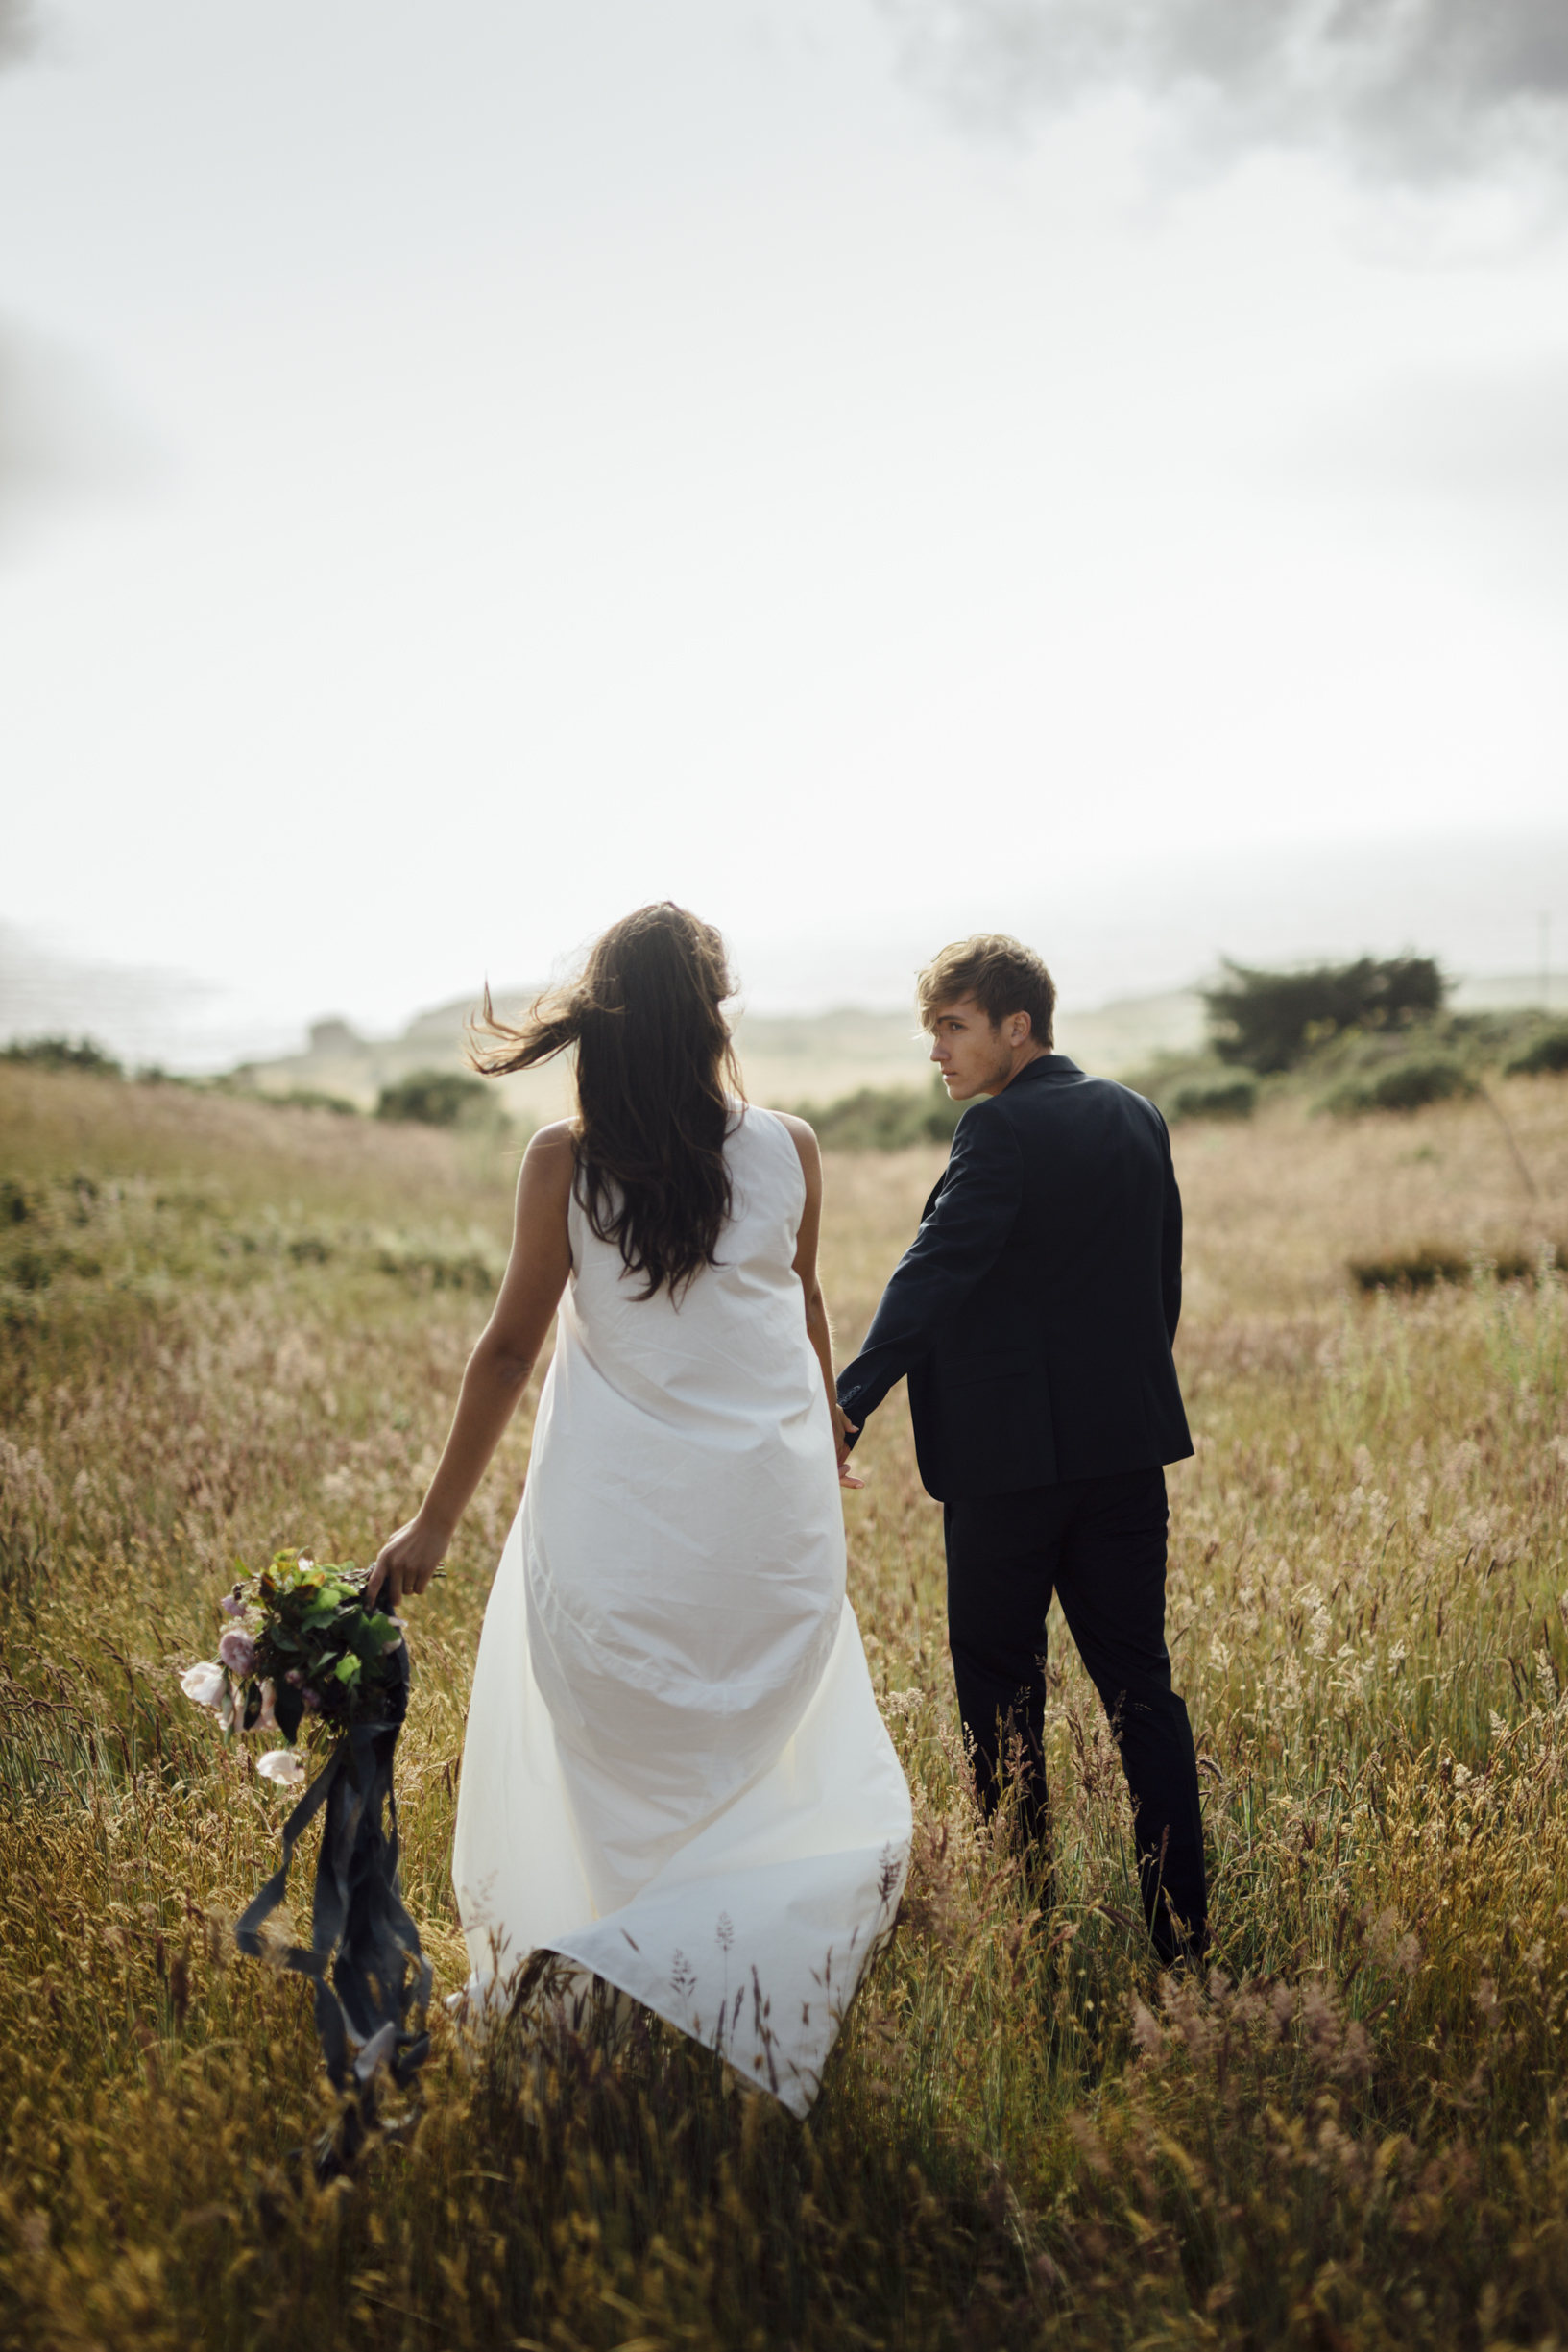 California-Wedding-Photography-by-Artur-Zaitsev-10